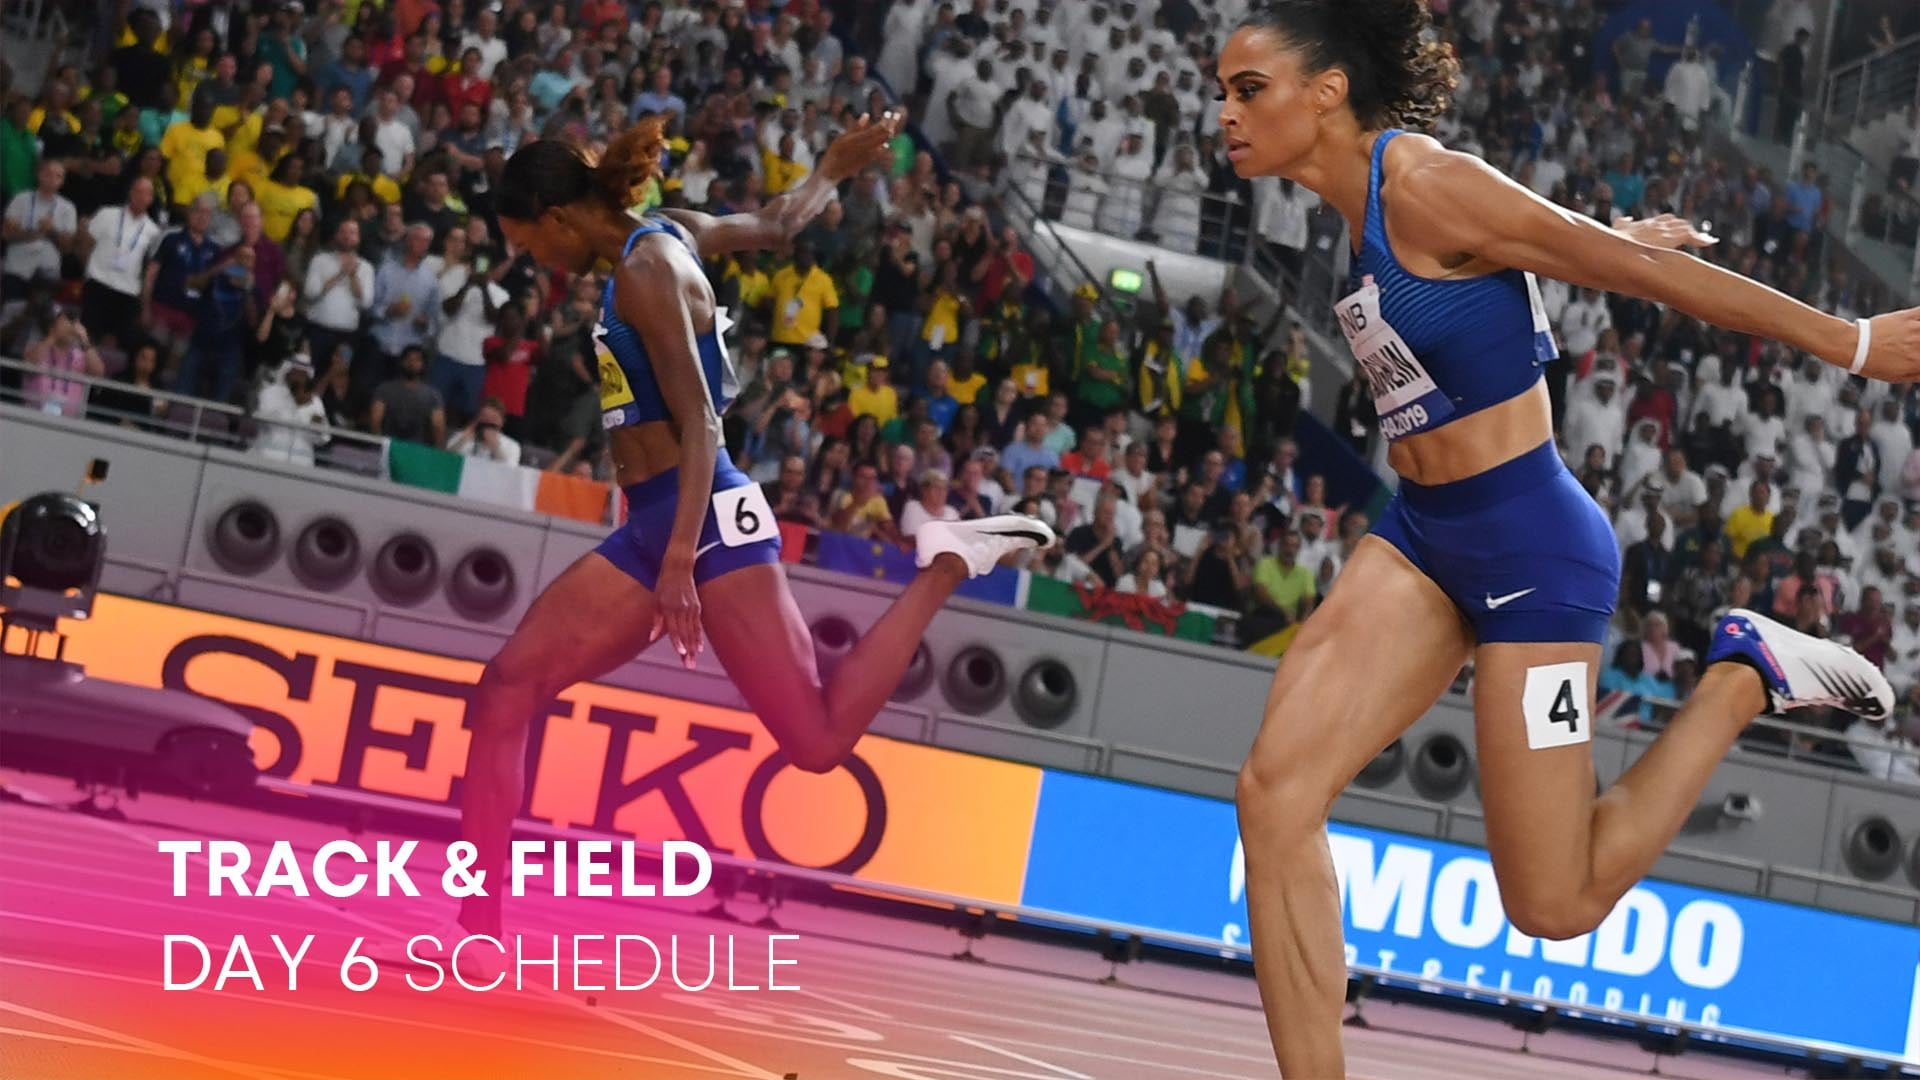 Image for Track & Field Day 6: McLaughlin, Muhammad face off in final